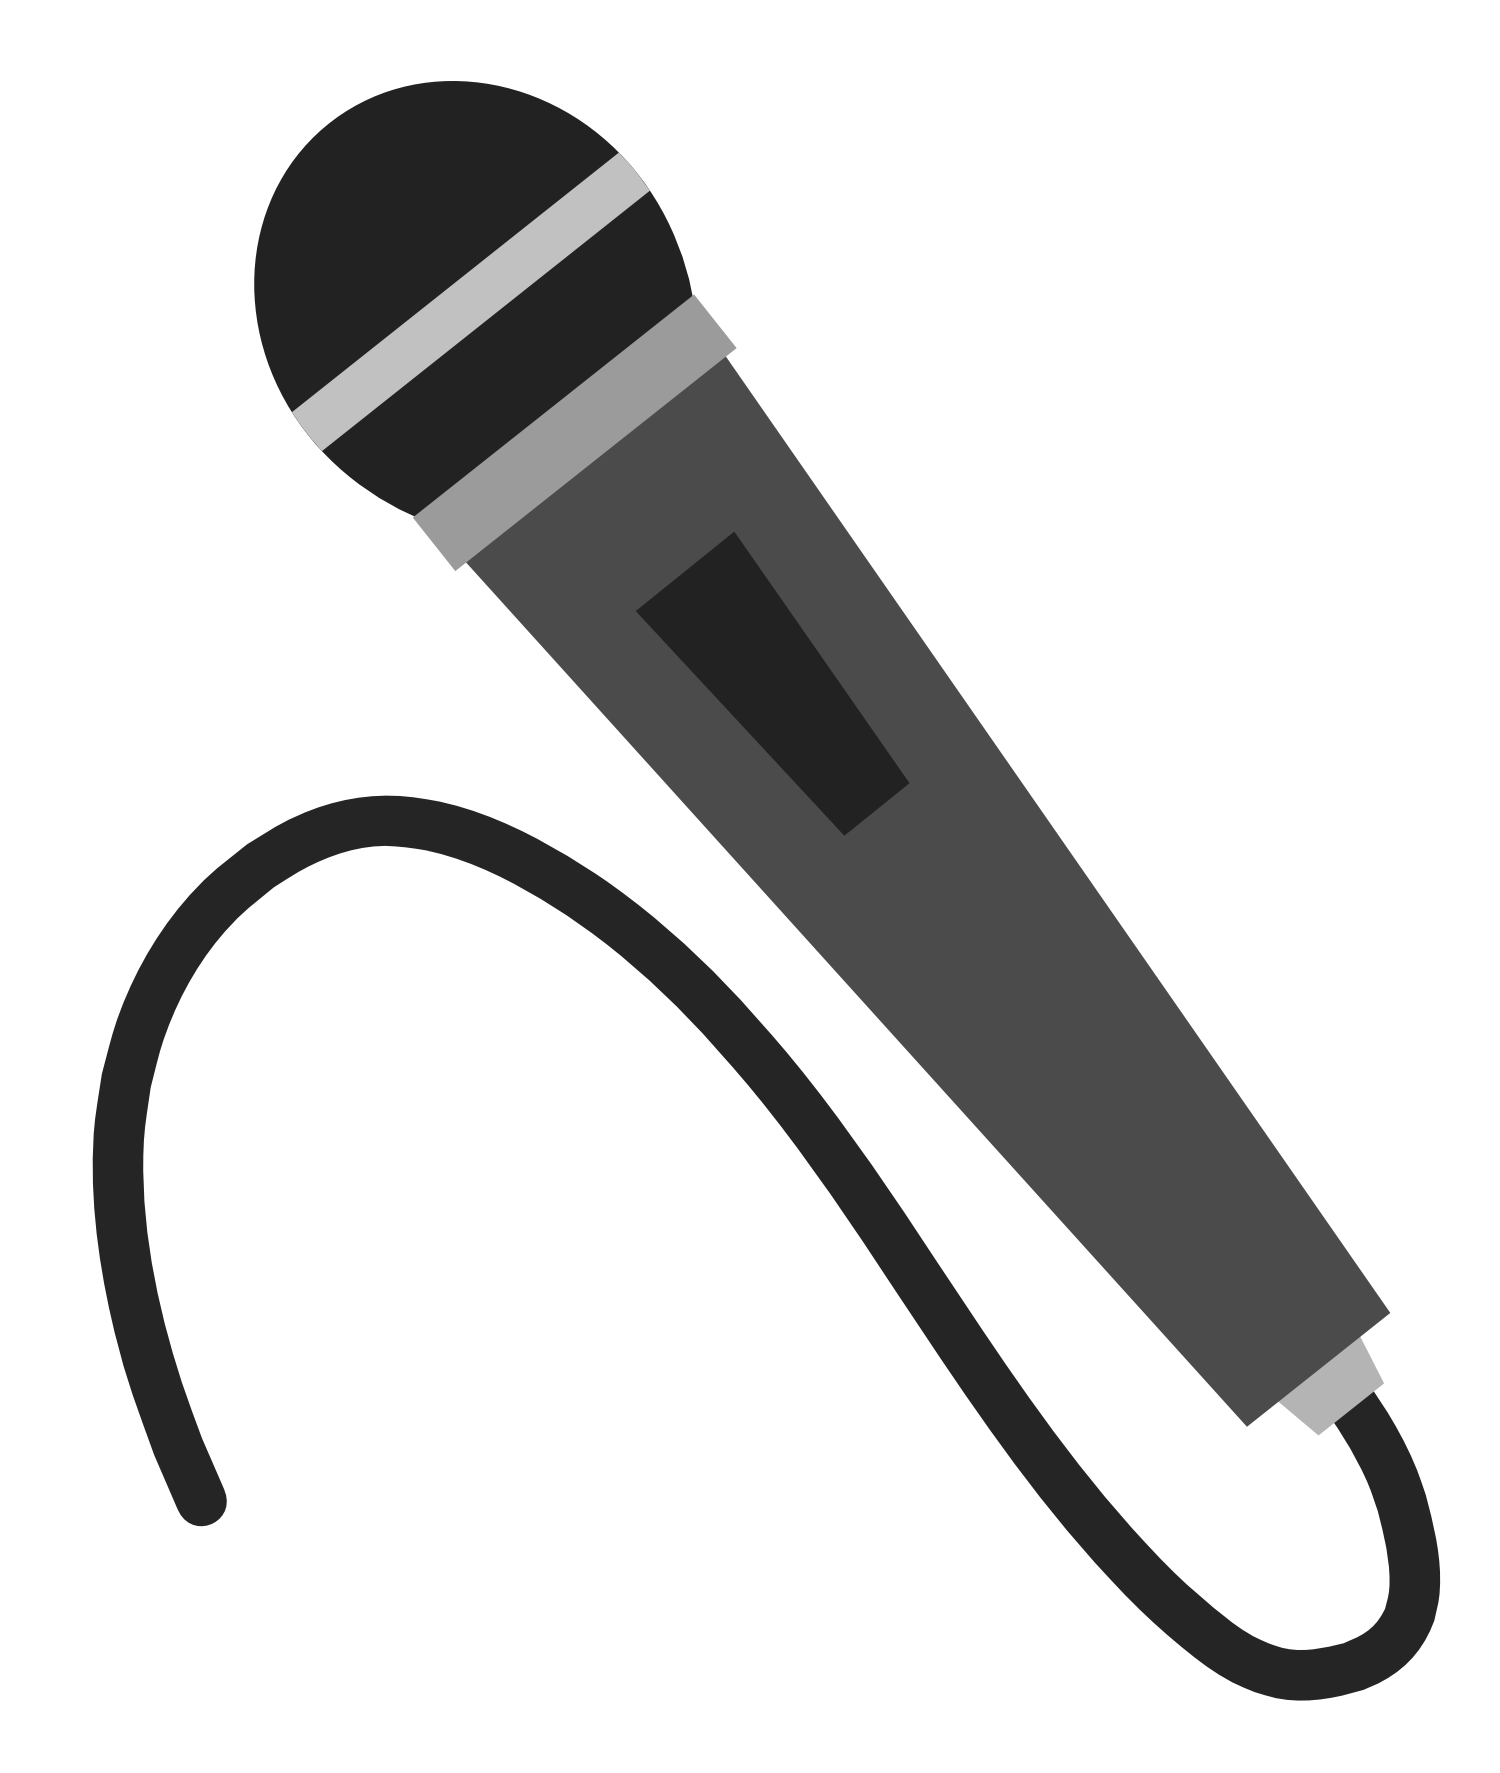 Microhpne clipart picture free download Radio microphone free clipart images | Party Themes | Free clipart ... picture free download